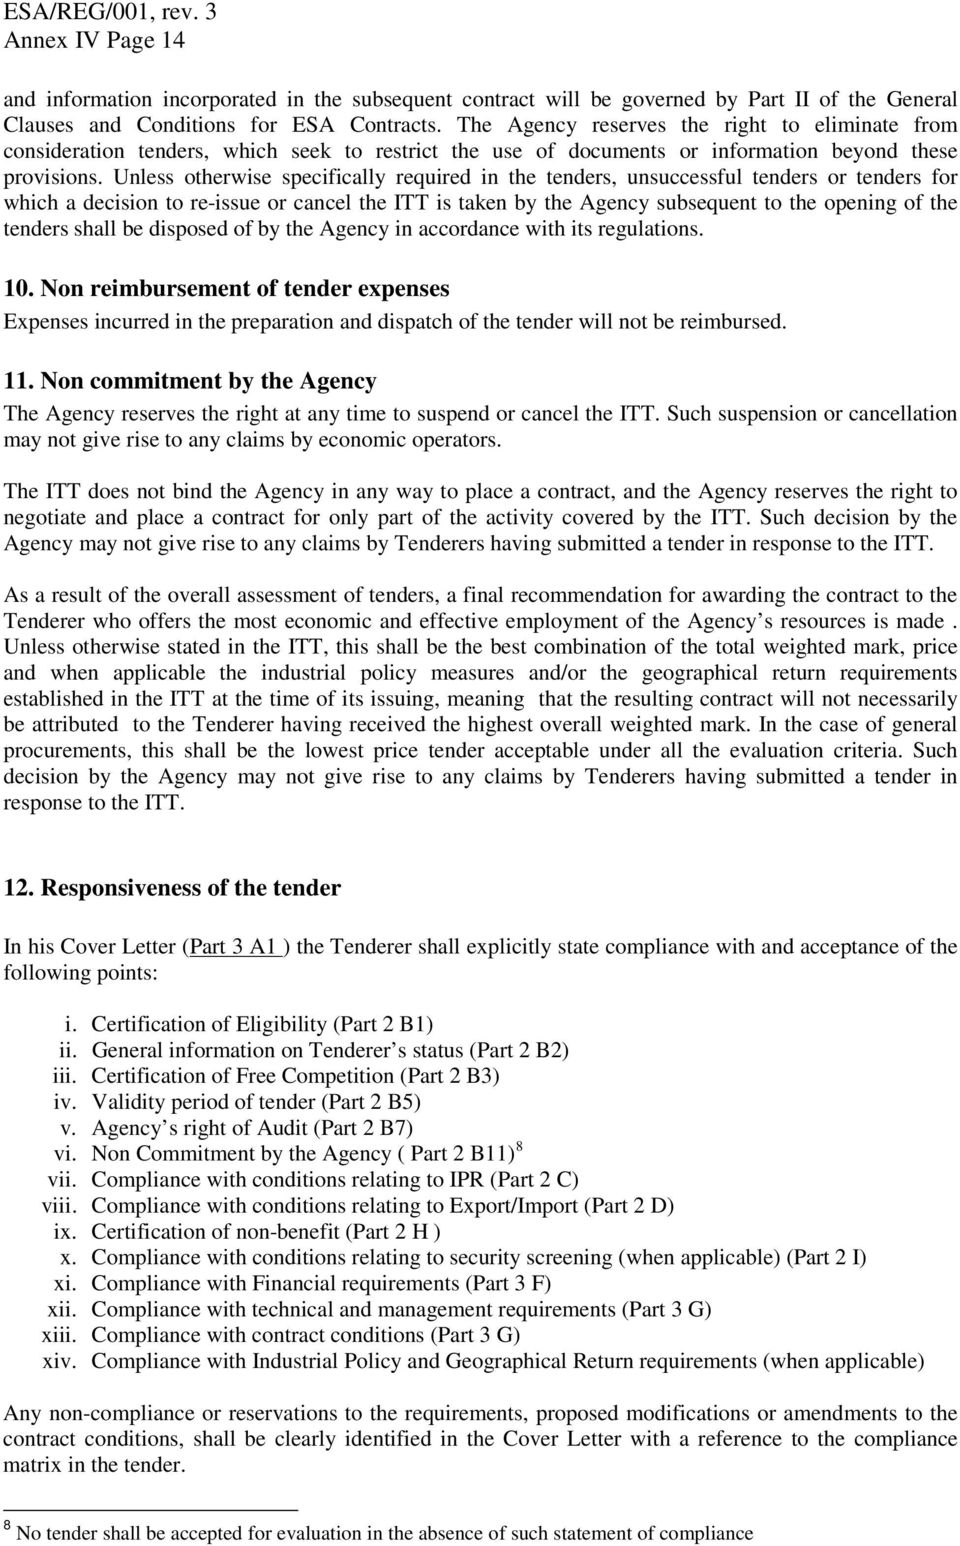 General Conditions of Tender For ESA Contracts - PDF Free ...